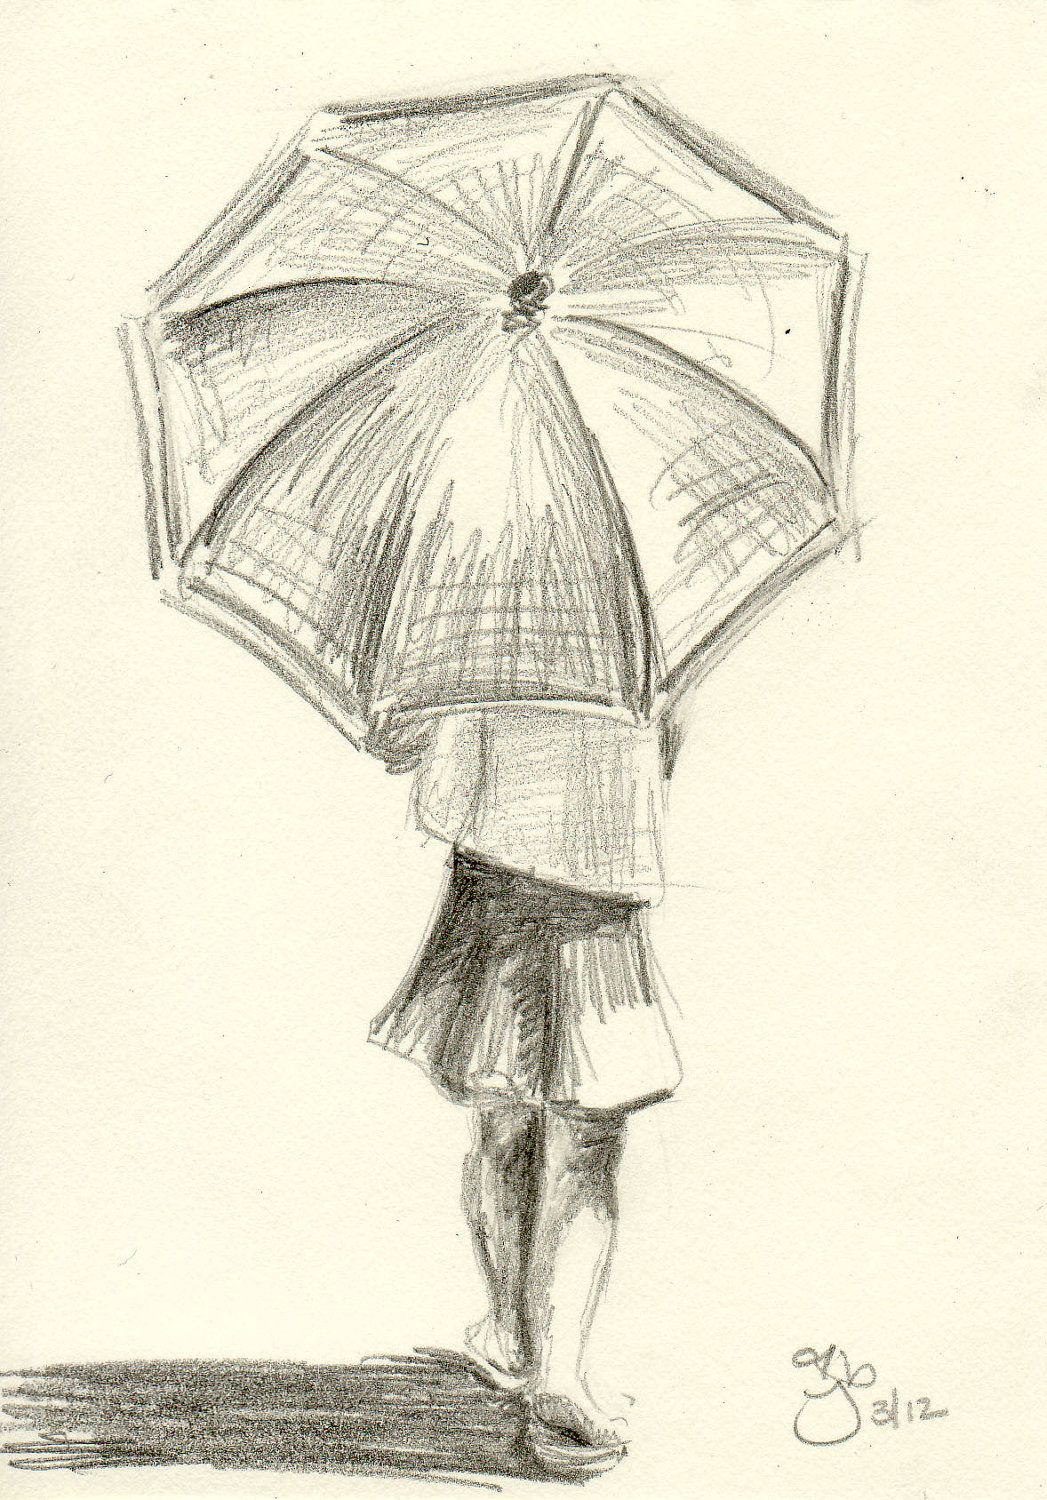 Girl with umbrella 4x6 pencil study by jamiepbruno on etsy